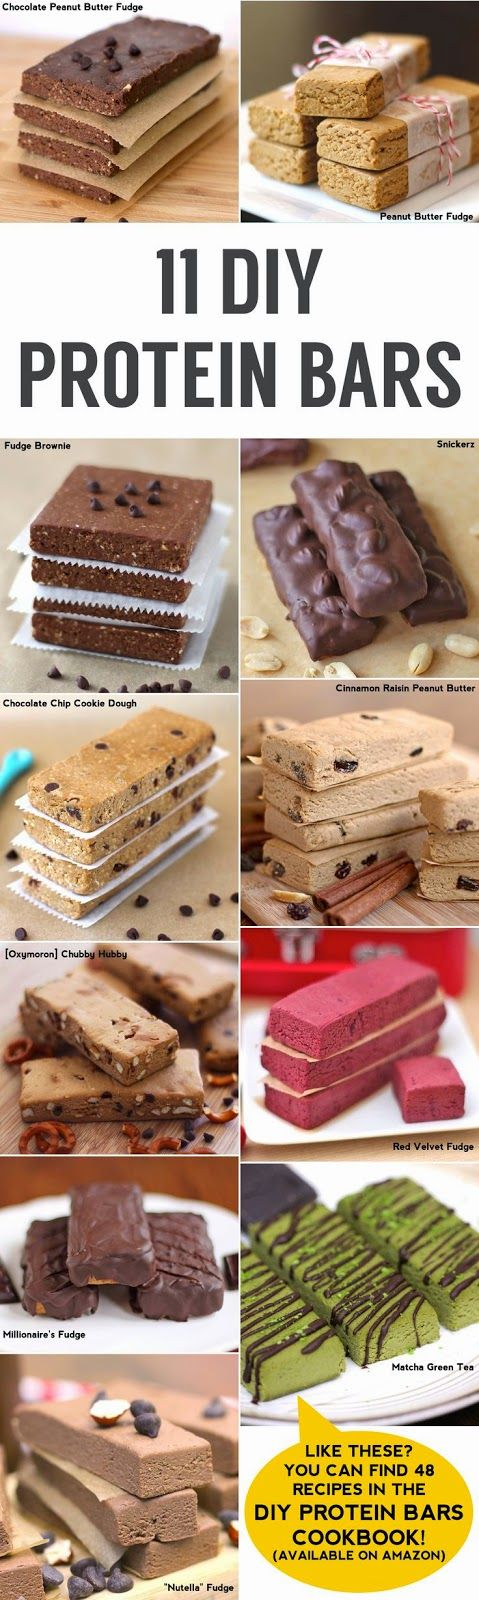 Craft Project Ideas: The ULTIMATE DIY Roundup! 43 Healthy DIY Recipes